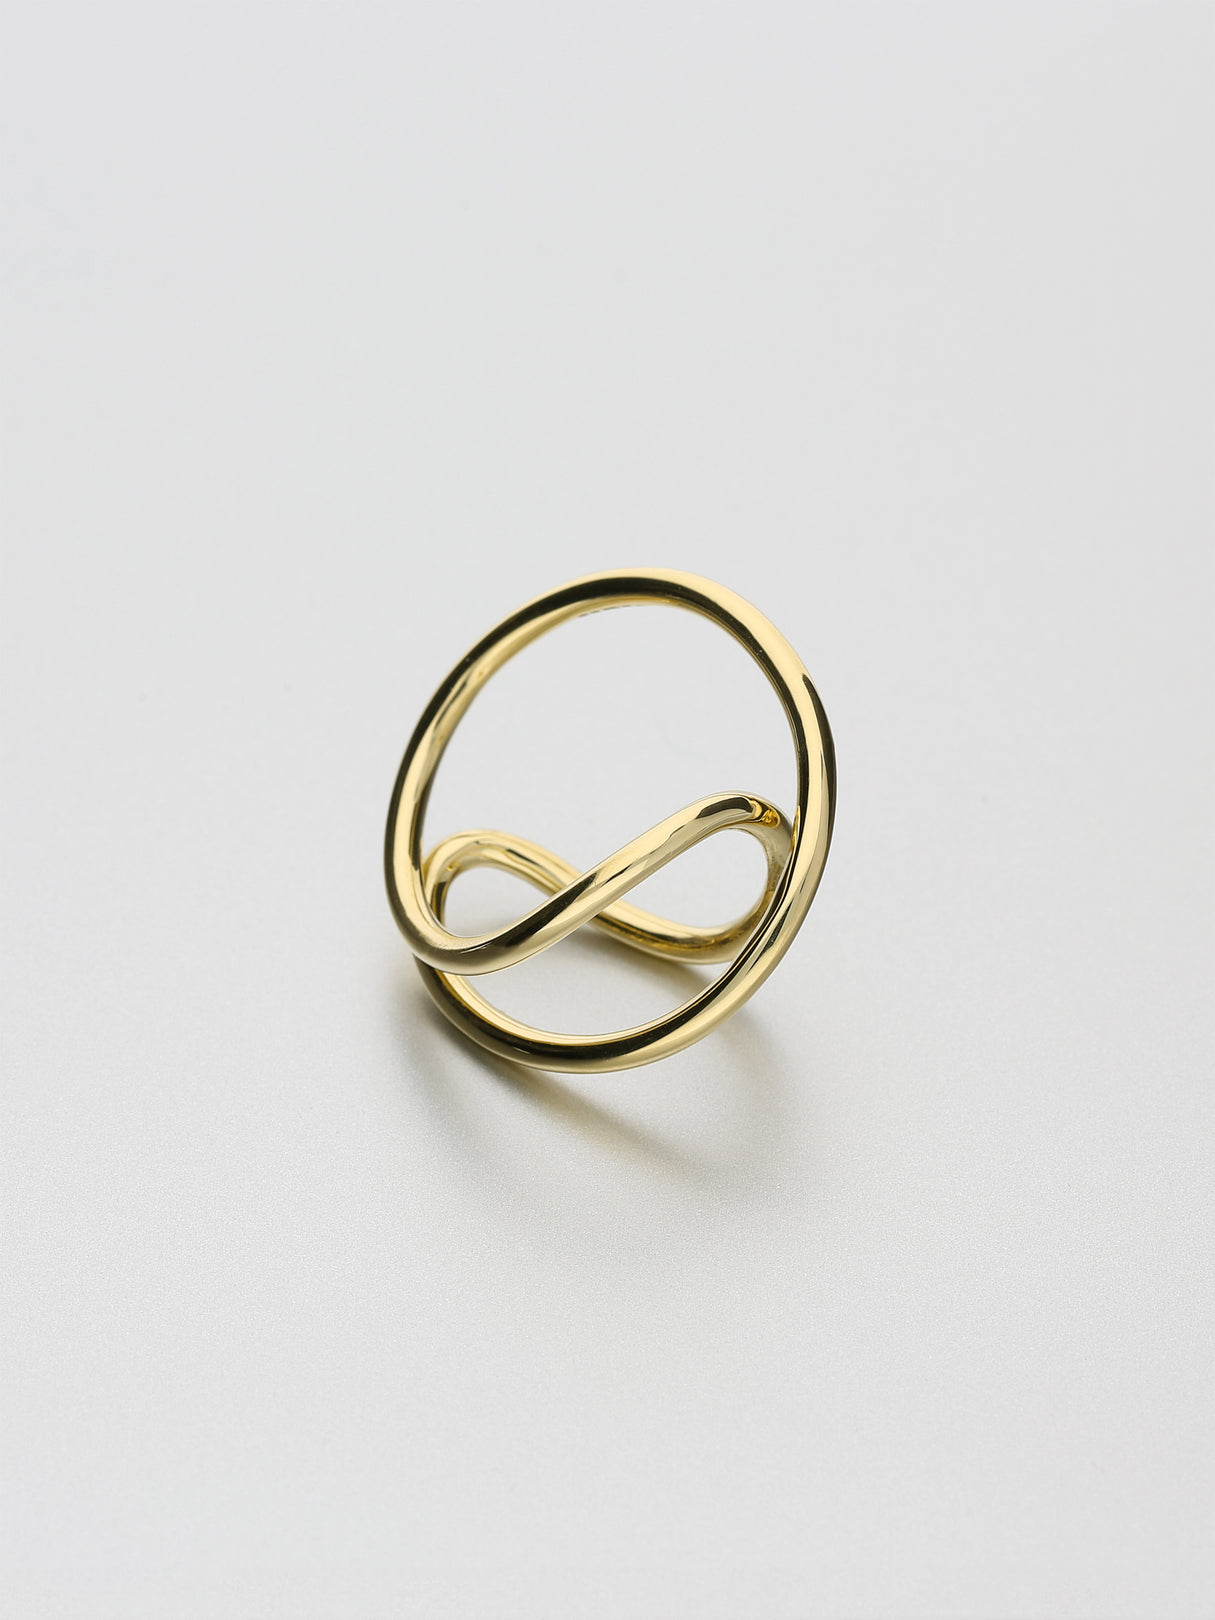 Aeon Ring, I Yellow gold